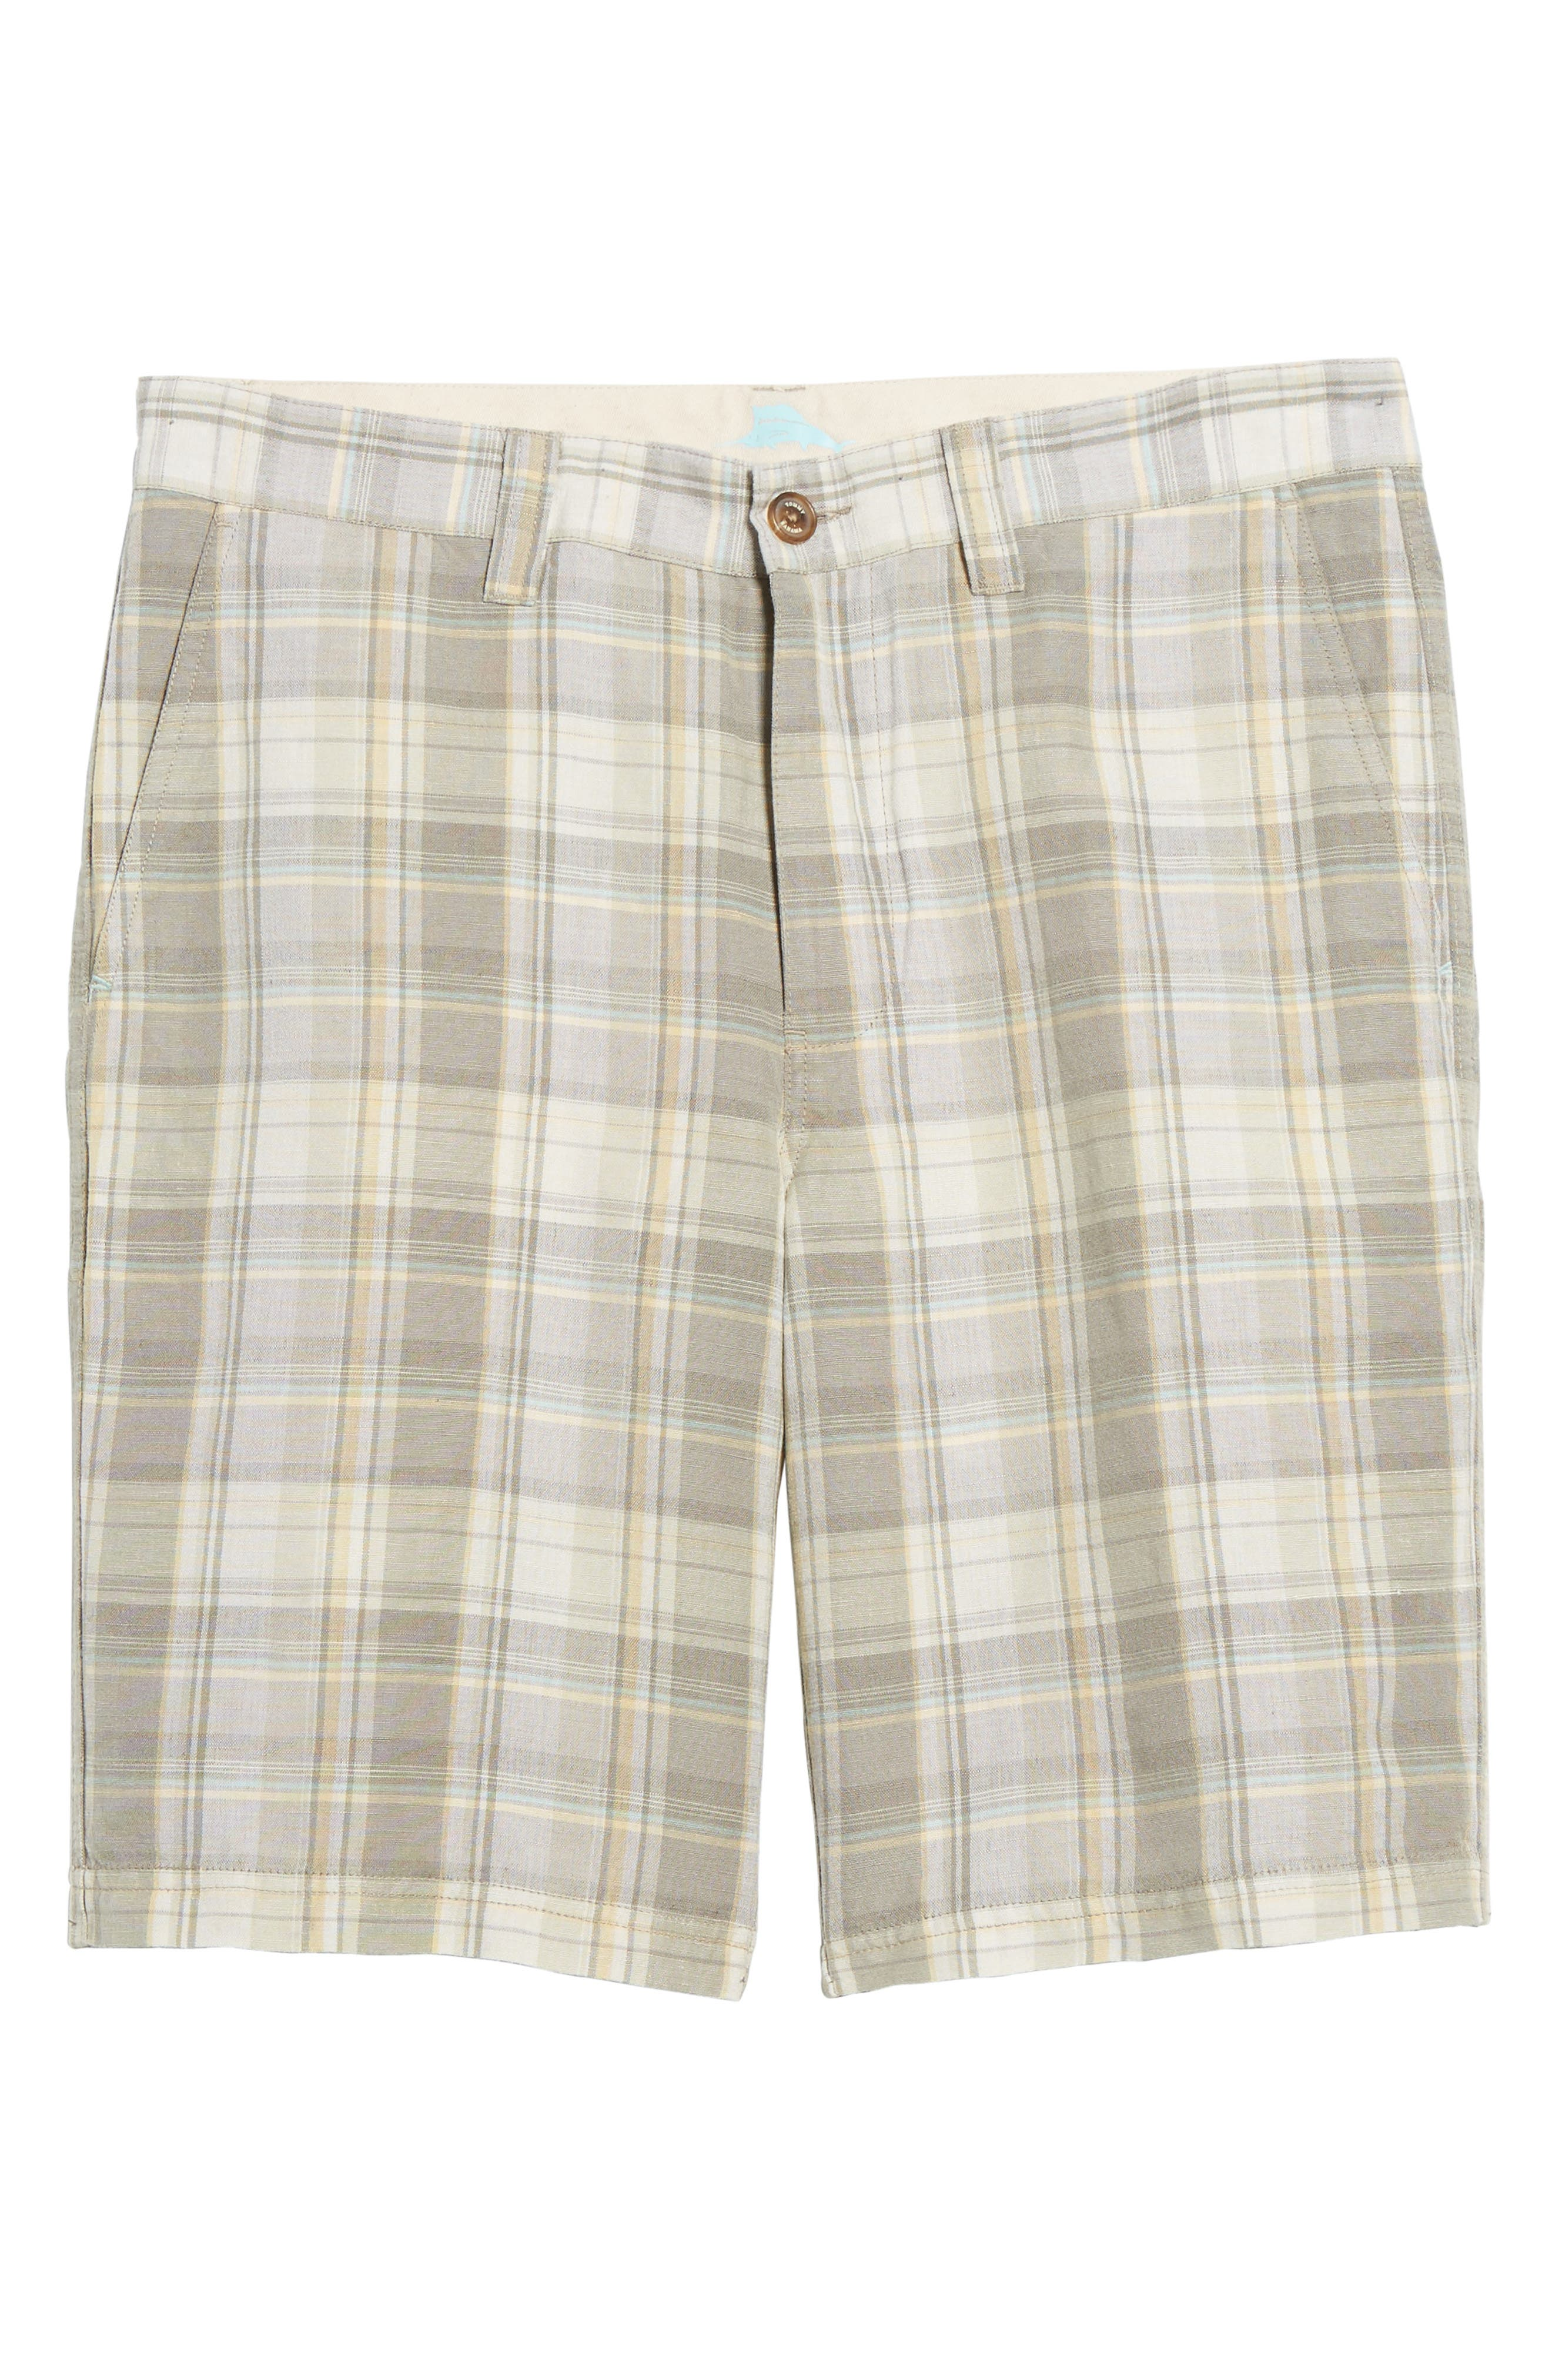 Coastal Dunes Plaid Shorts,                             Alternate thumbnail 6, color,                             250